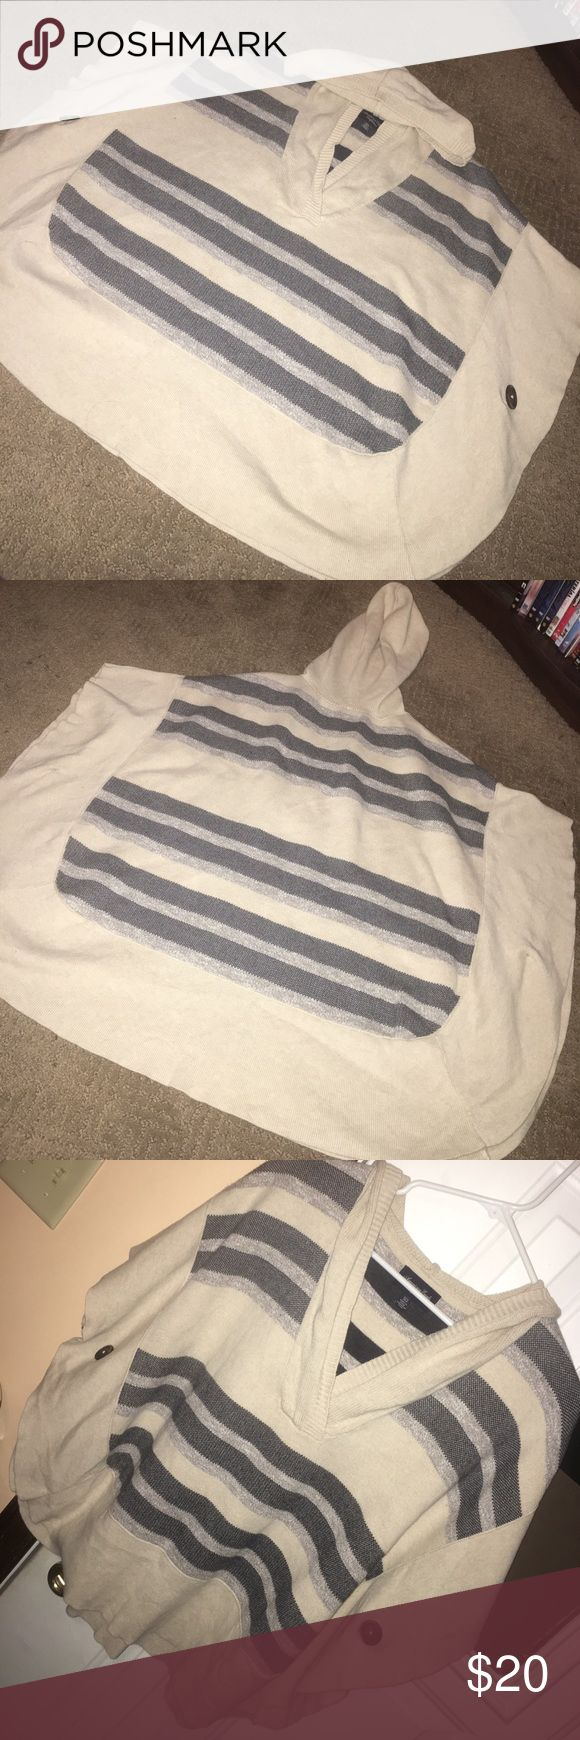 American eagle poncho 🌻 Good used condition. No flaws. Poncho style. Open sides. Buttons keep the arm holes in place. This was always my flight outfit 😂 since it was comfy and trendy for early mornings to the airport. Oatmeal color. Blue & gray stripes. Size xs/small. Runs big. American Eagle Outfitters Tops